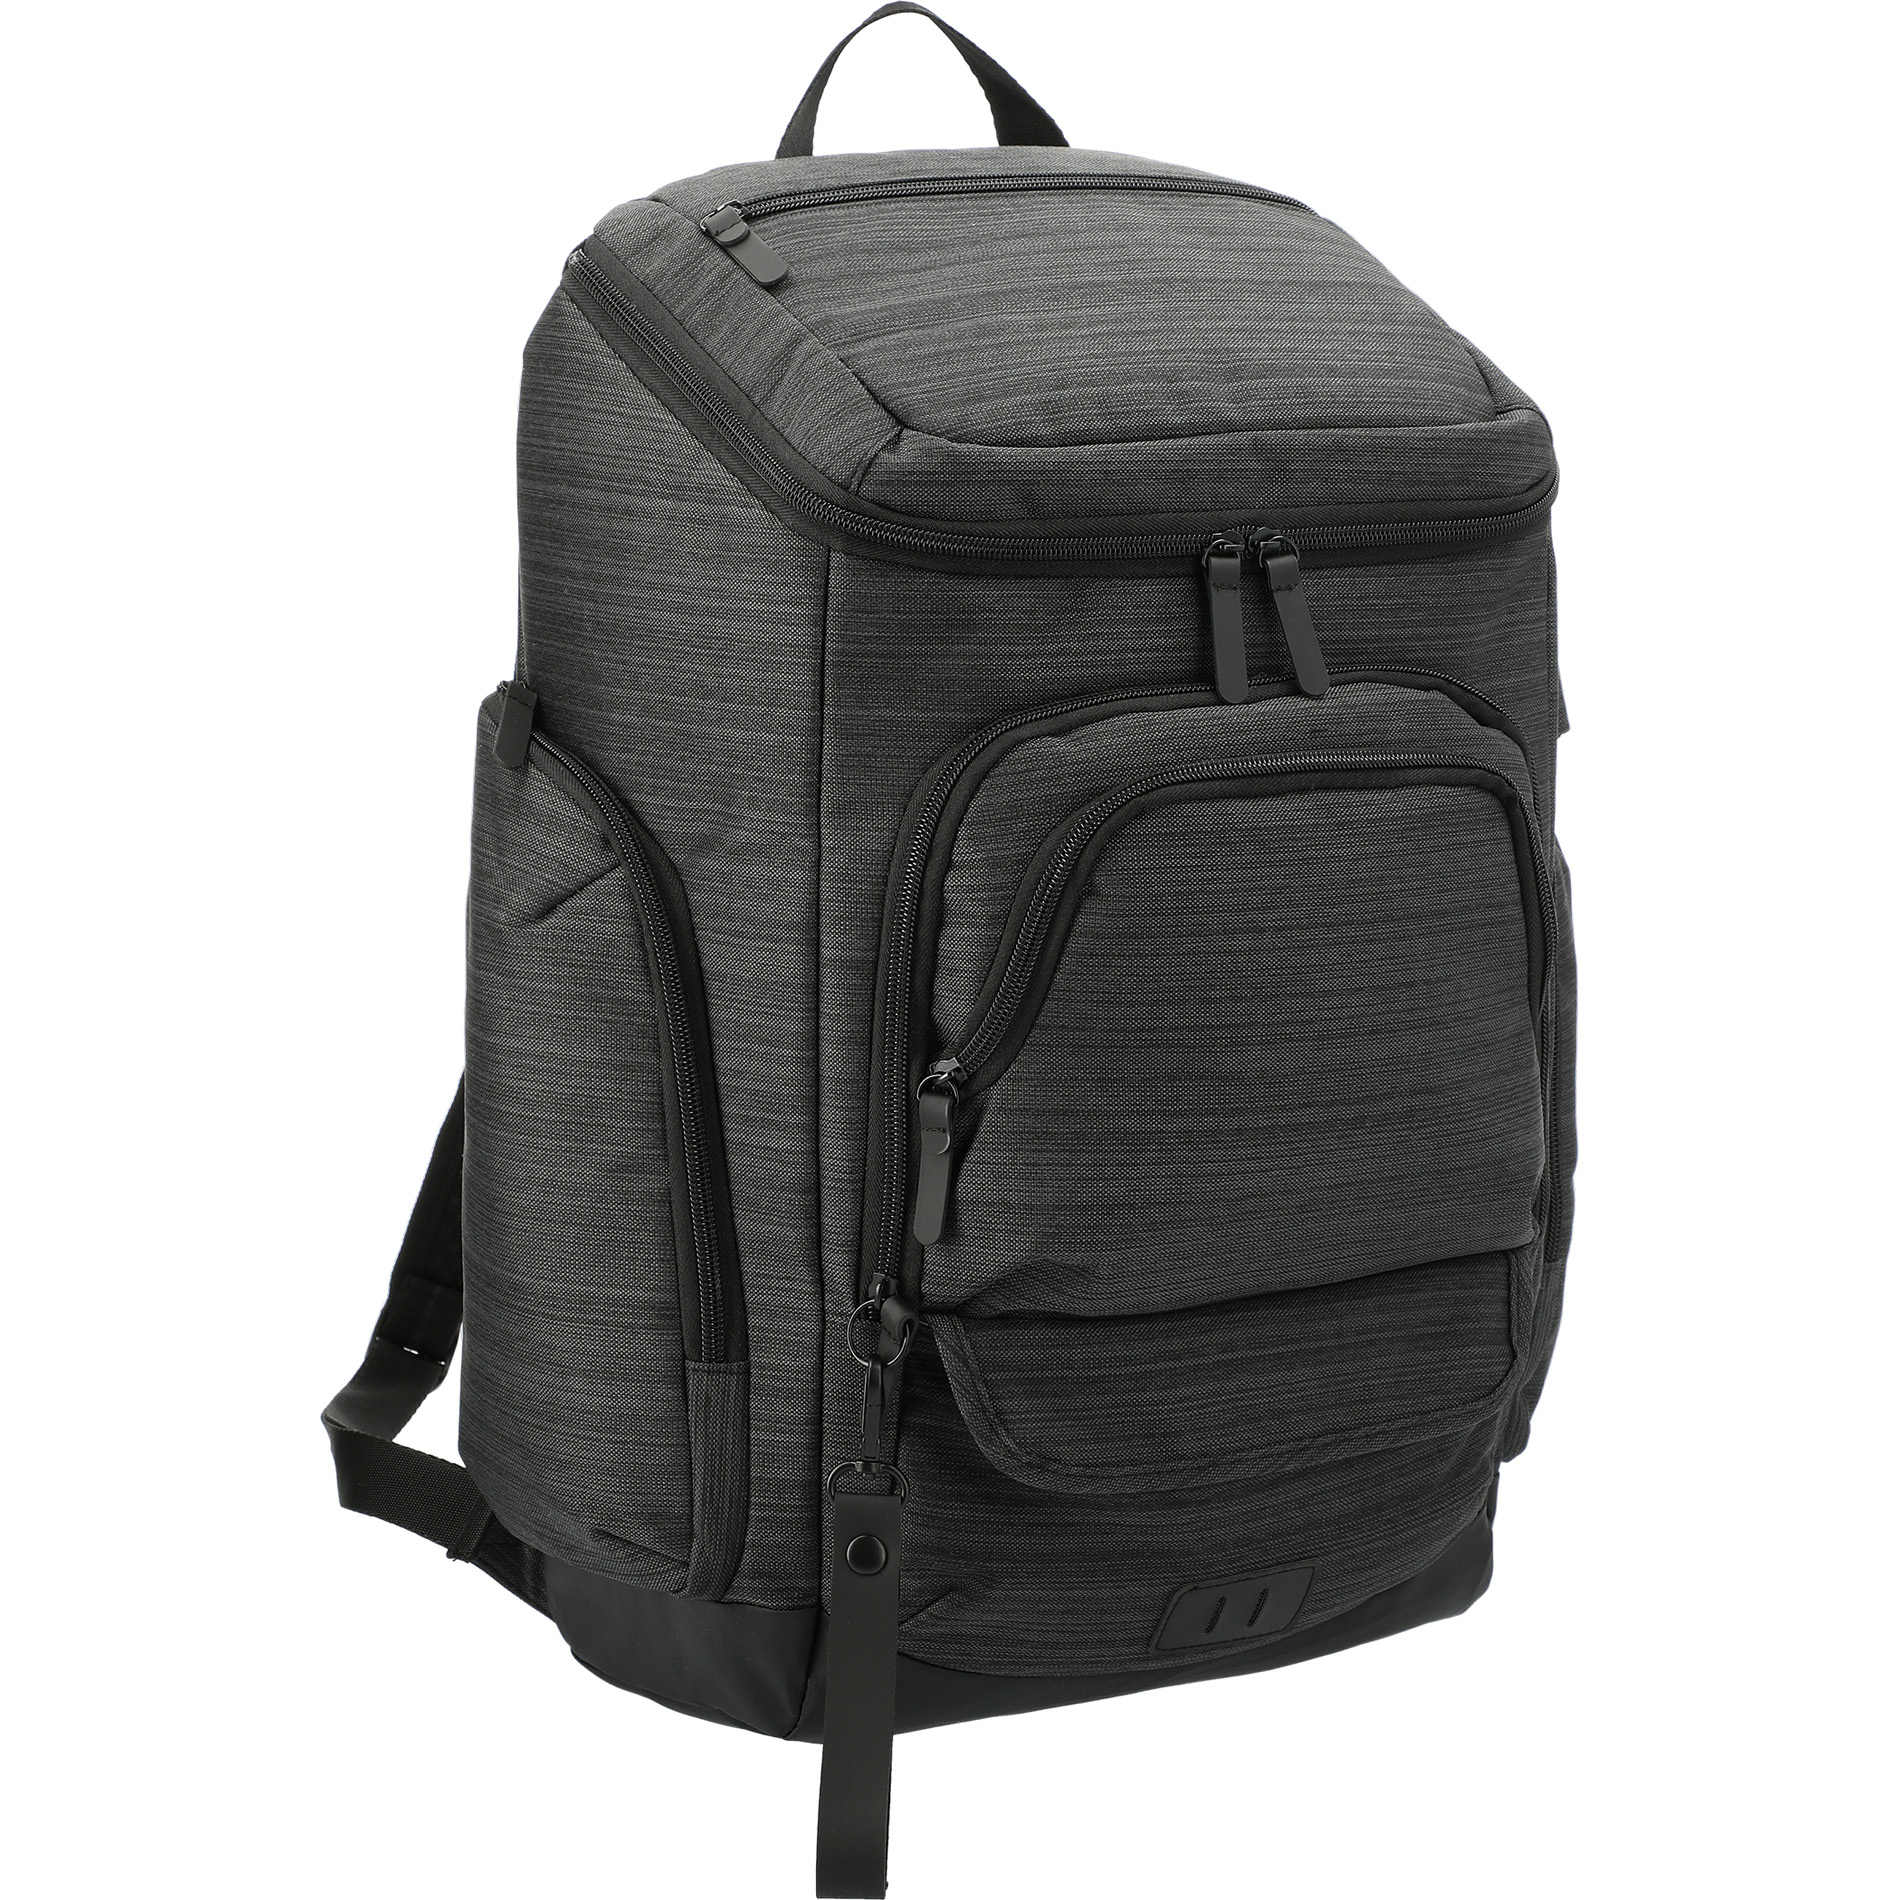 "LEEDS NBN 3950-02 - Whitby 15"" Computer Backpack with USB Port"